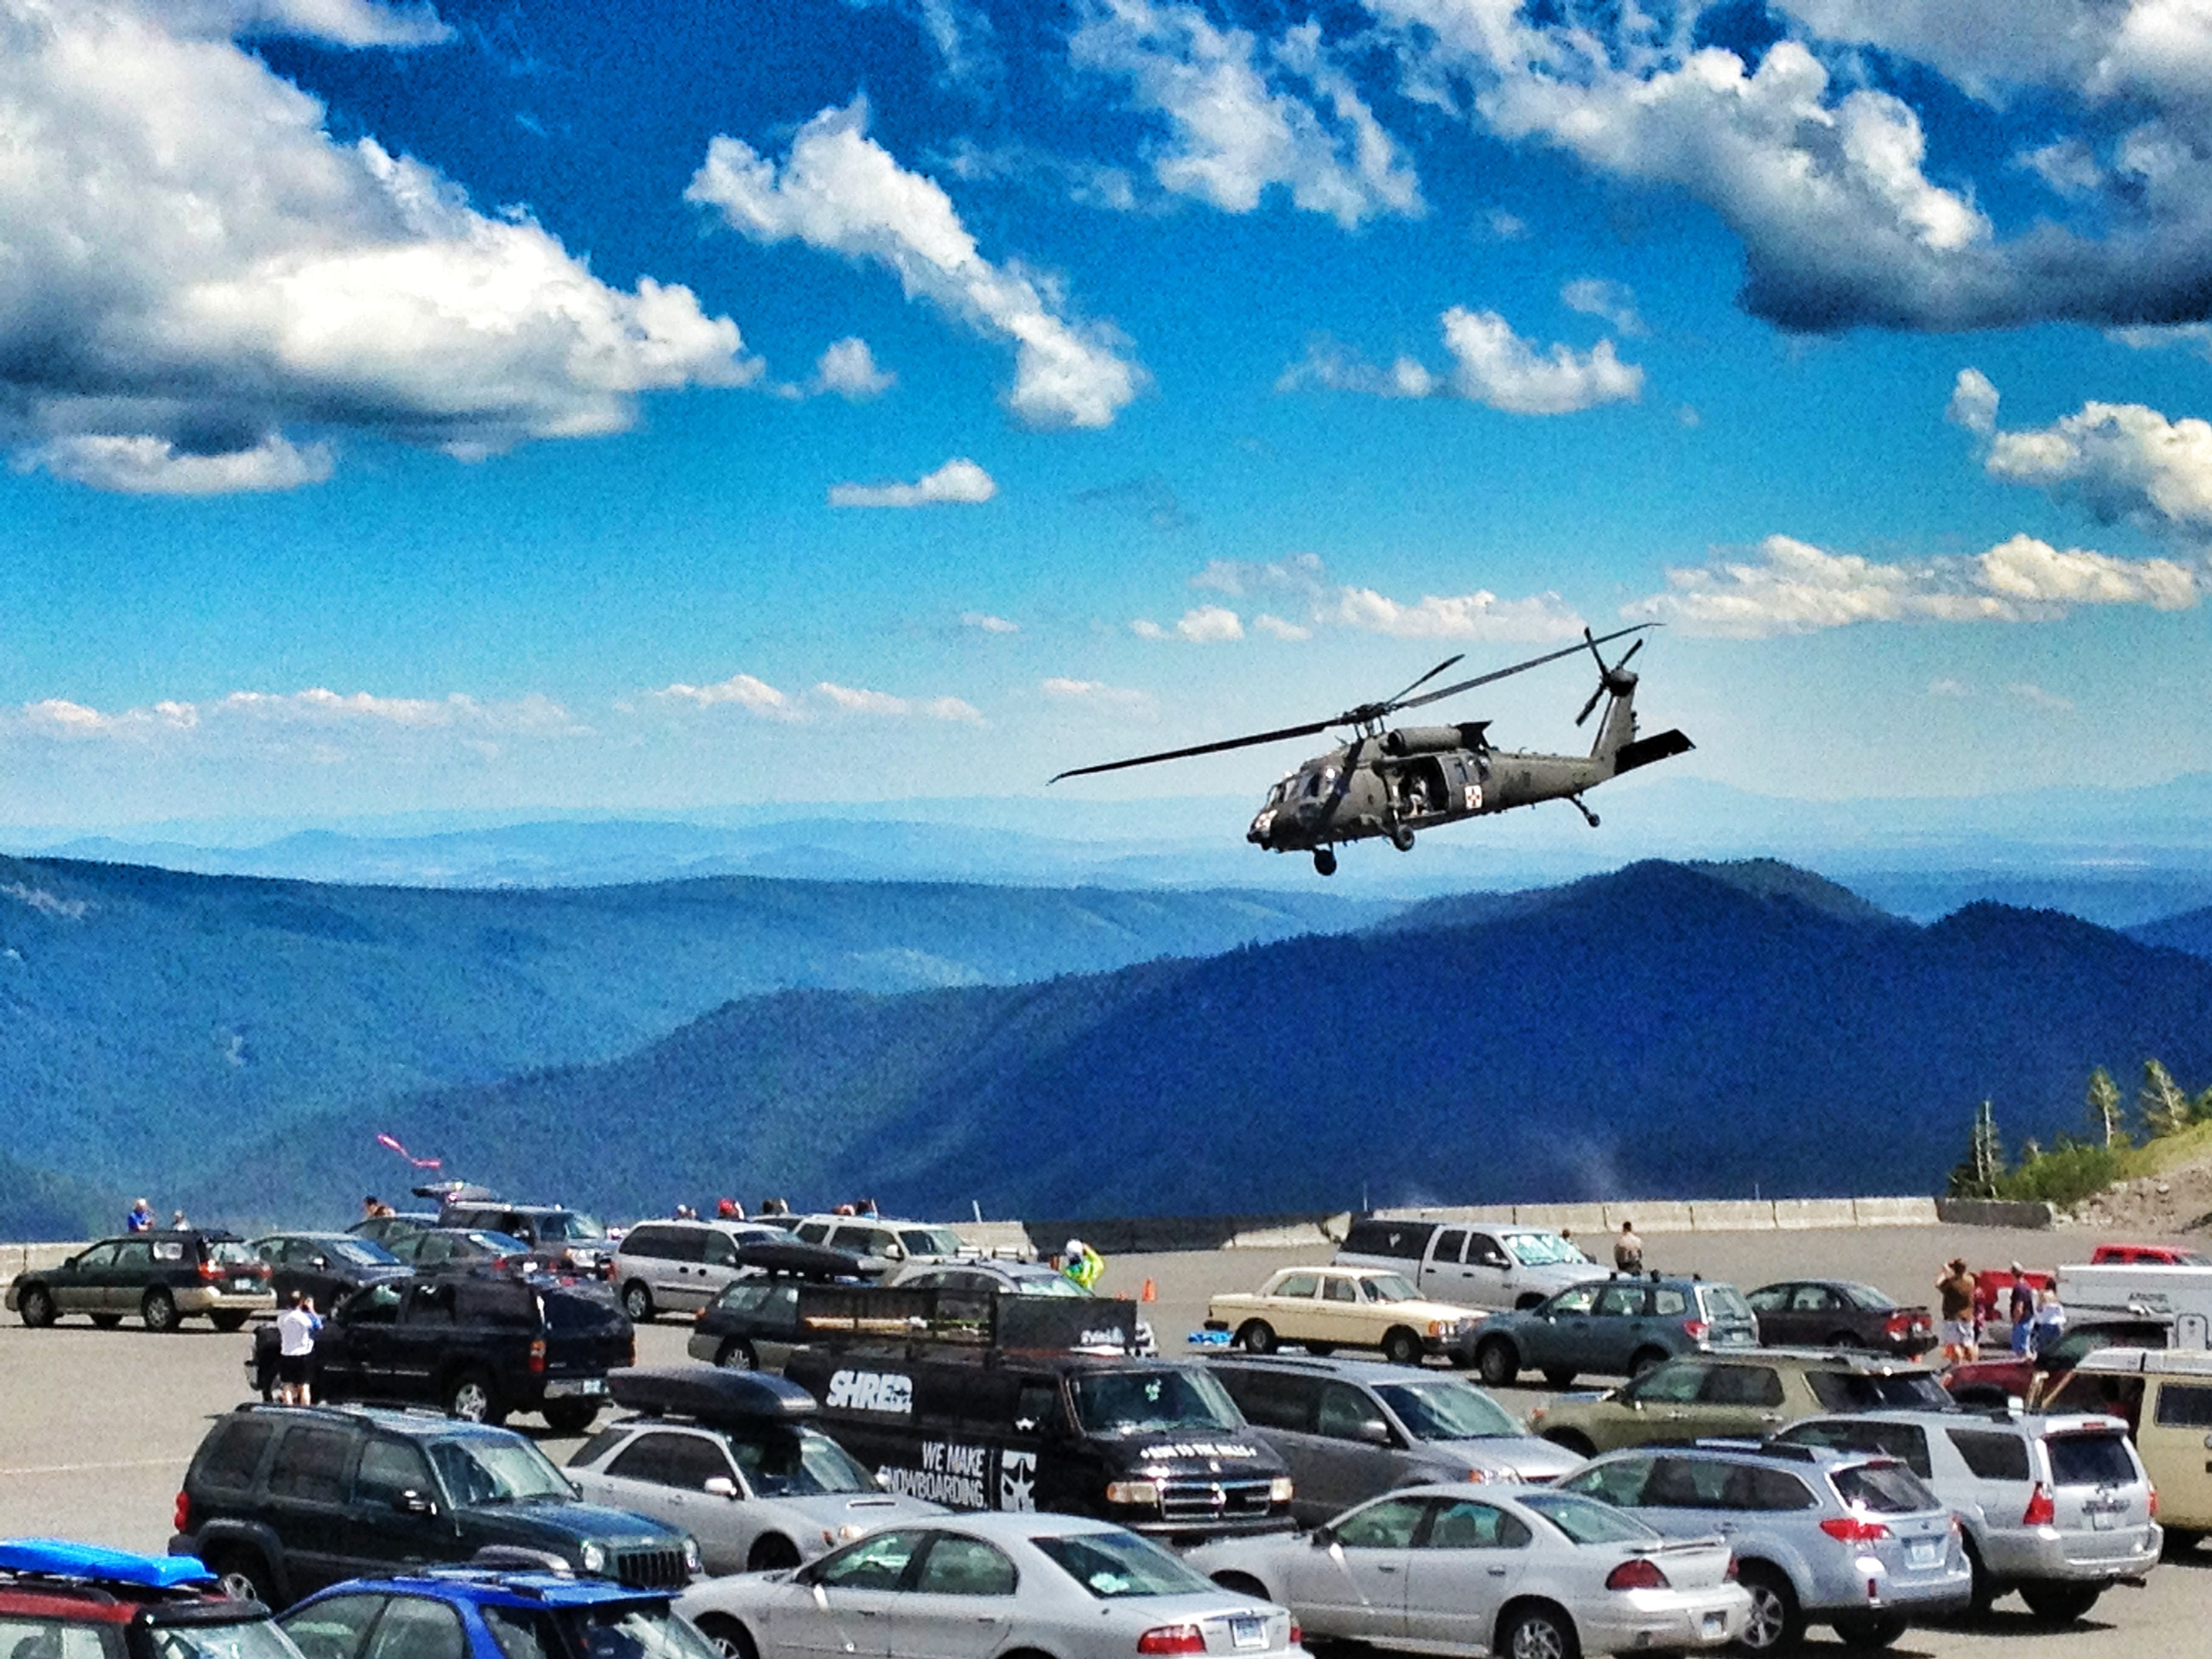 Heli taking off from the parking lot